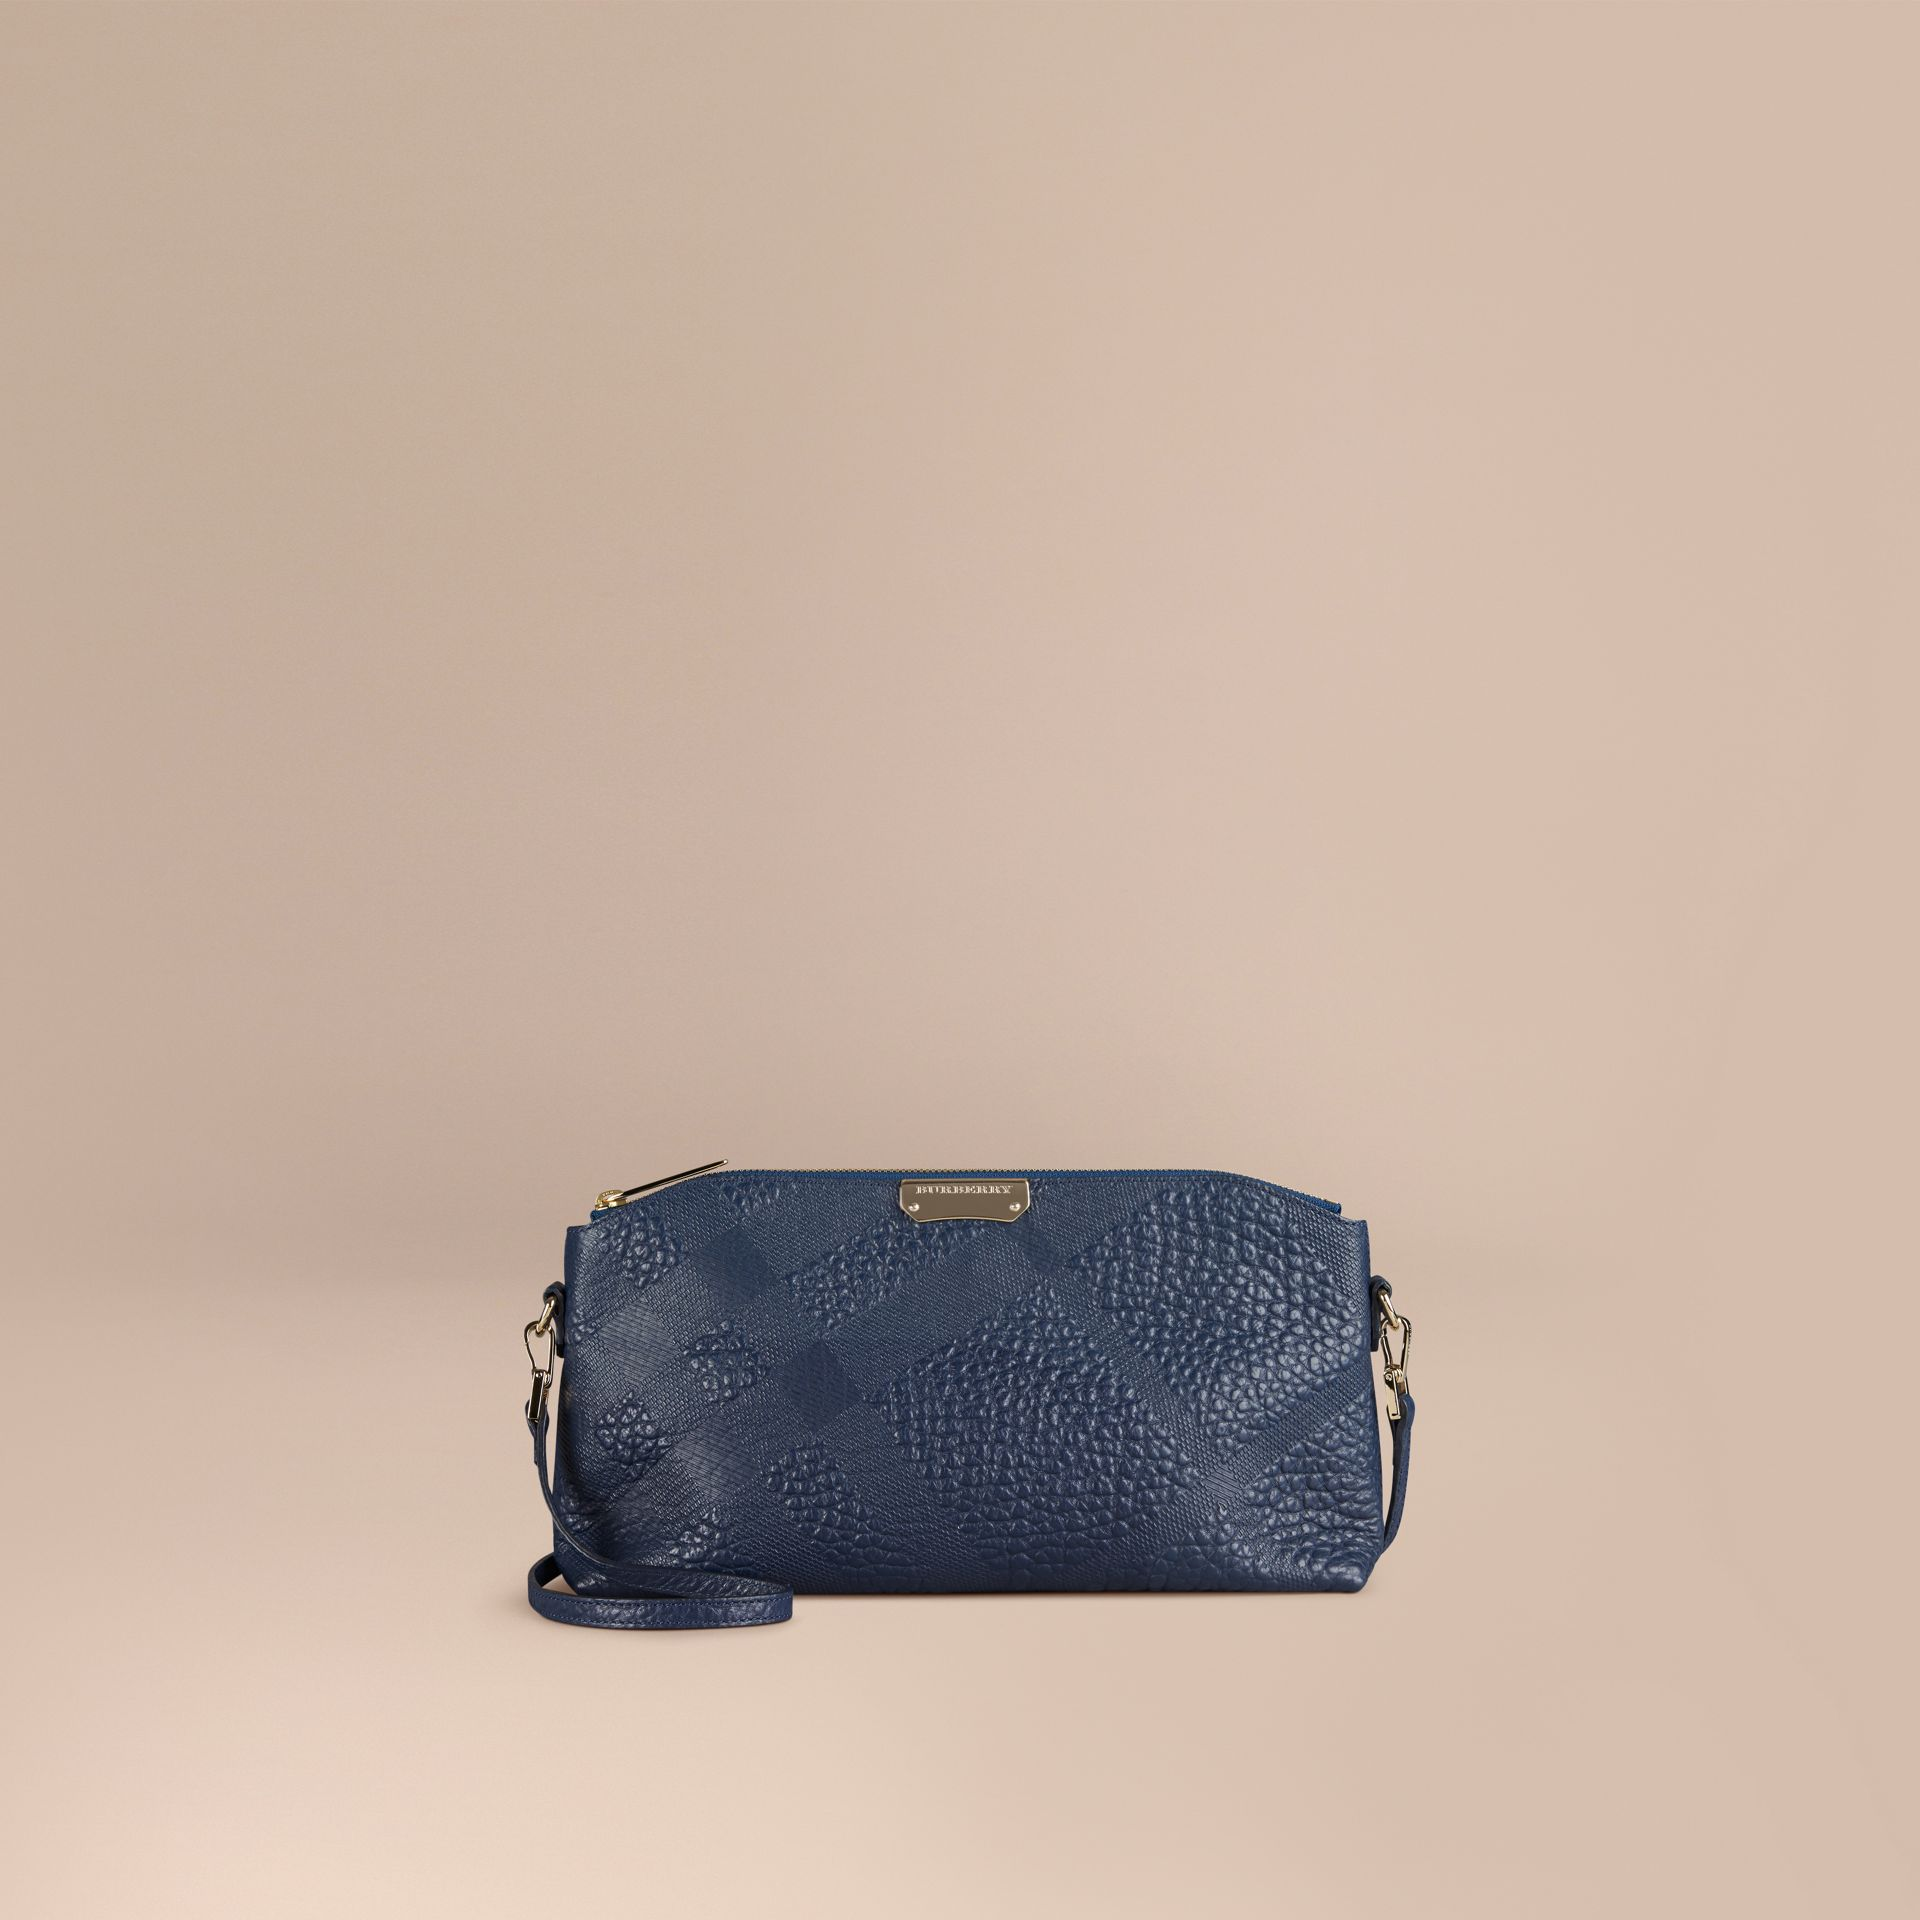 Small Embossed Check Leather Clutch Bag in Blue Carbon - gallery image 1